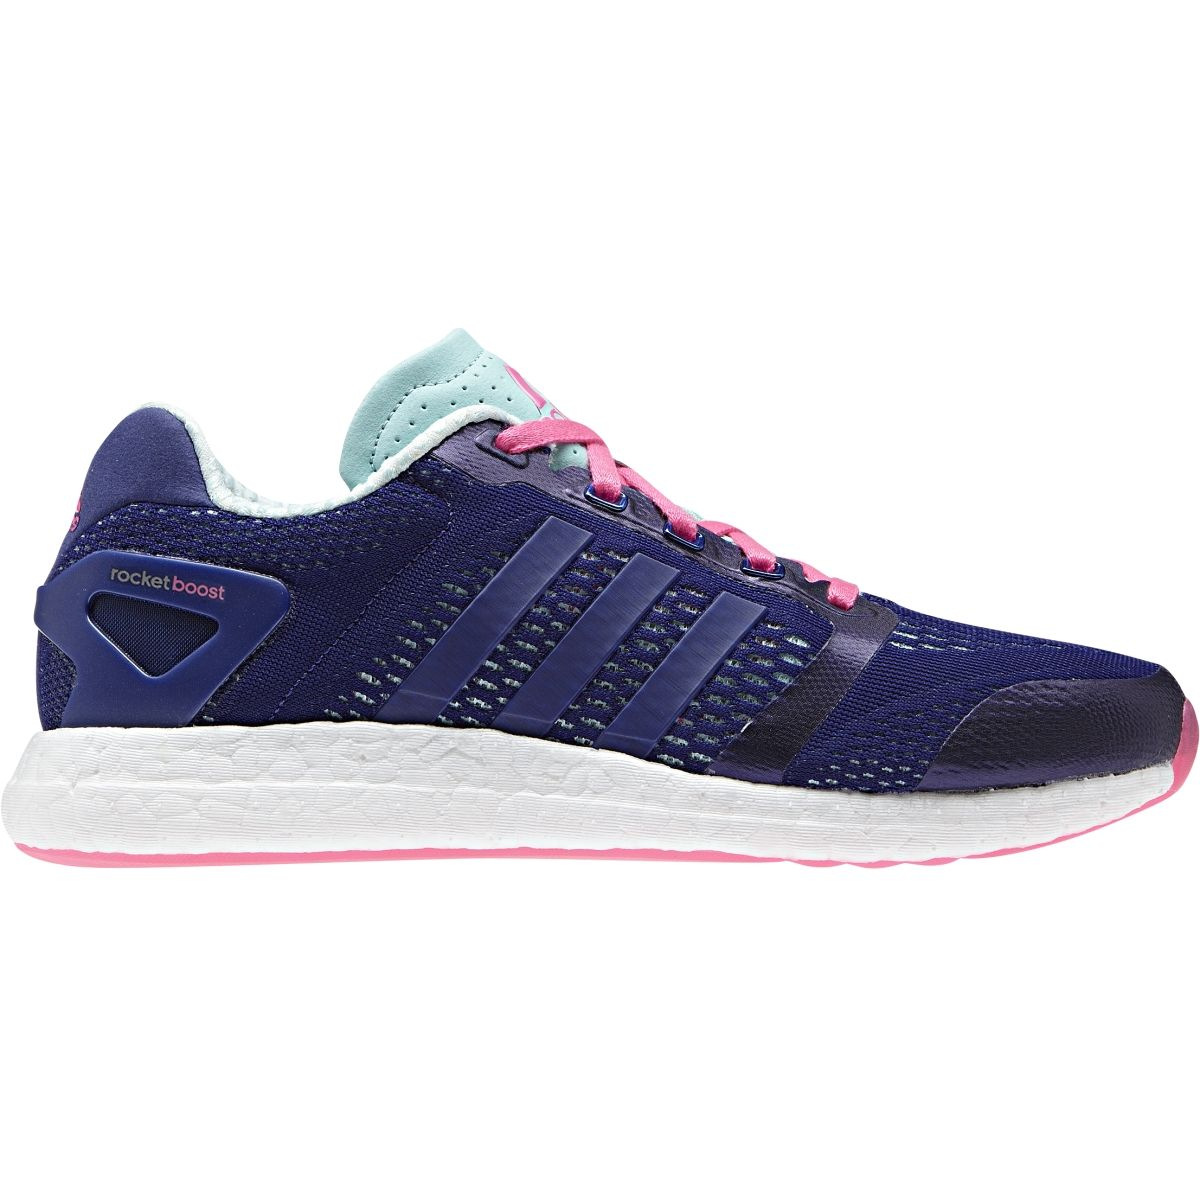 67bee68d89f5 ... wholesale adidas climachill rocket boost running shoes womens c41ff  fee05